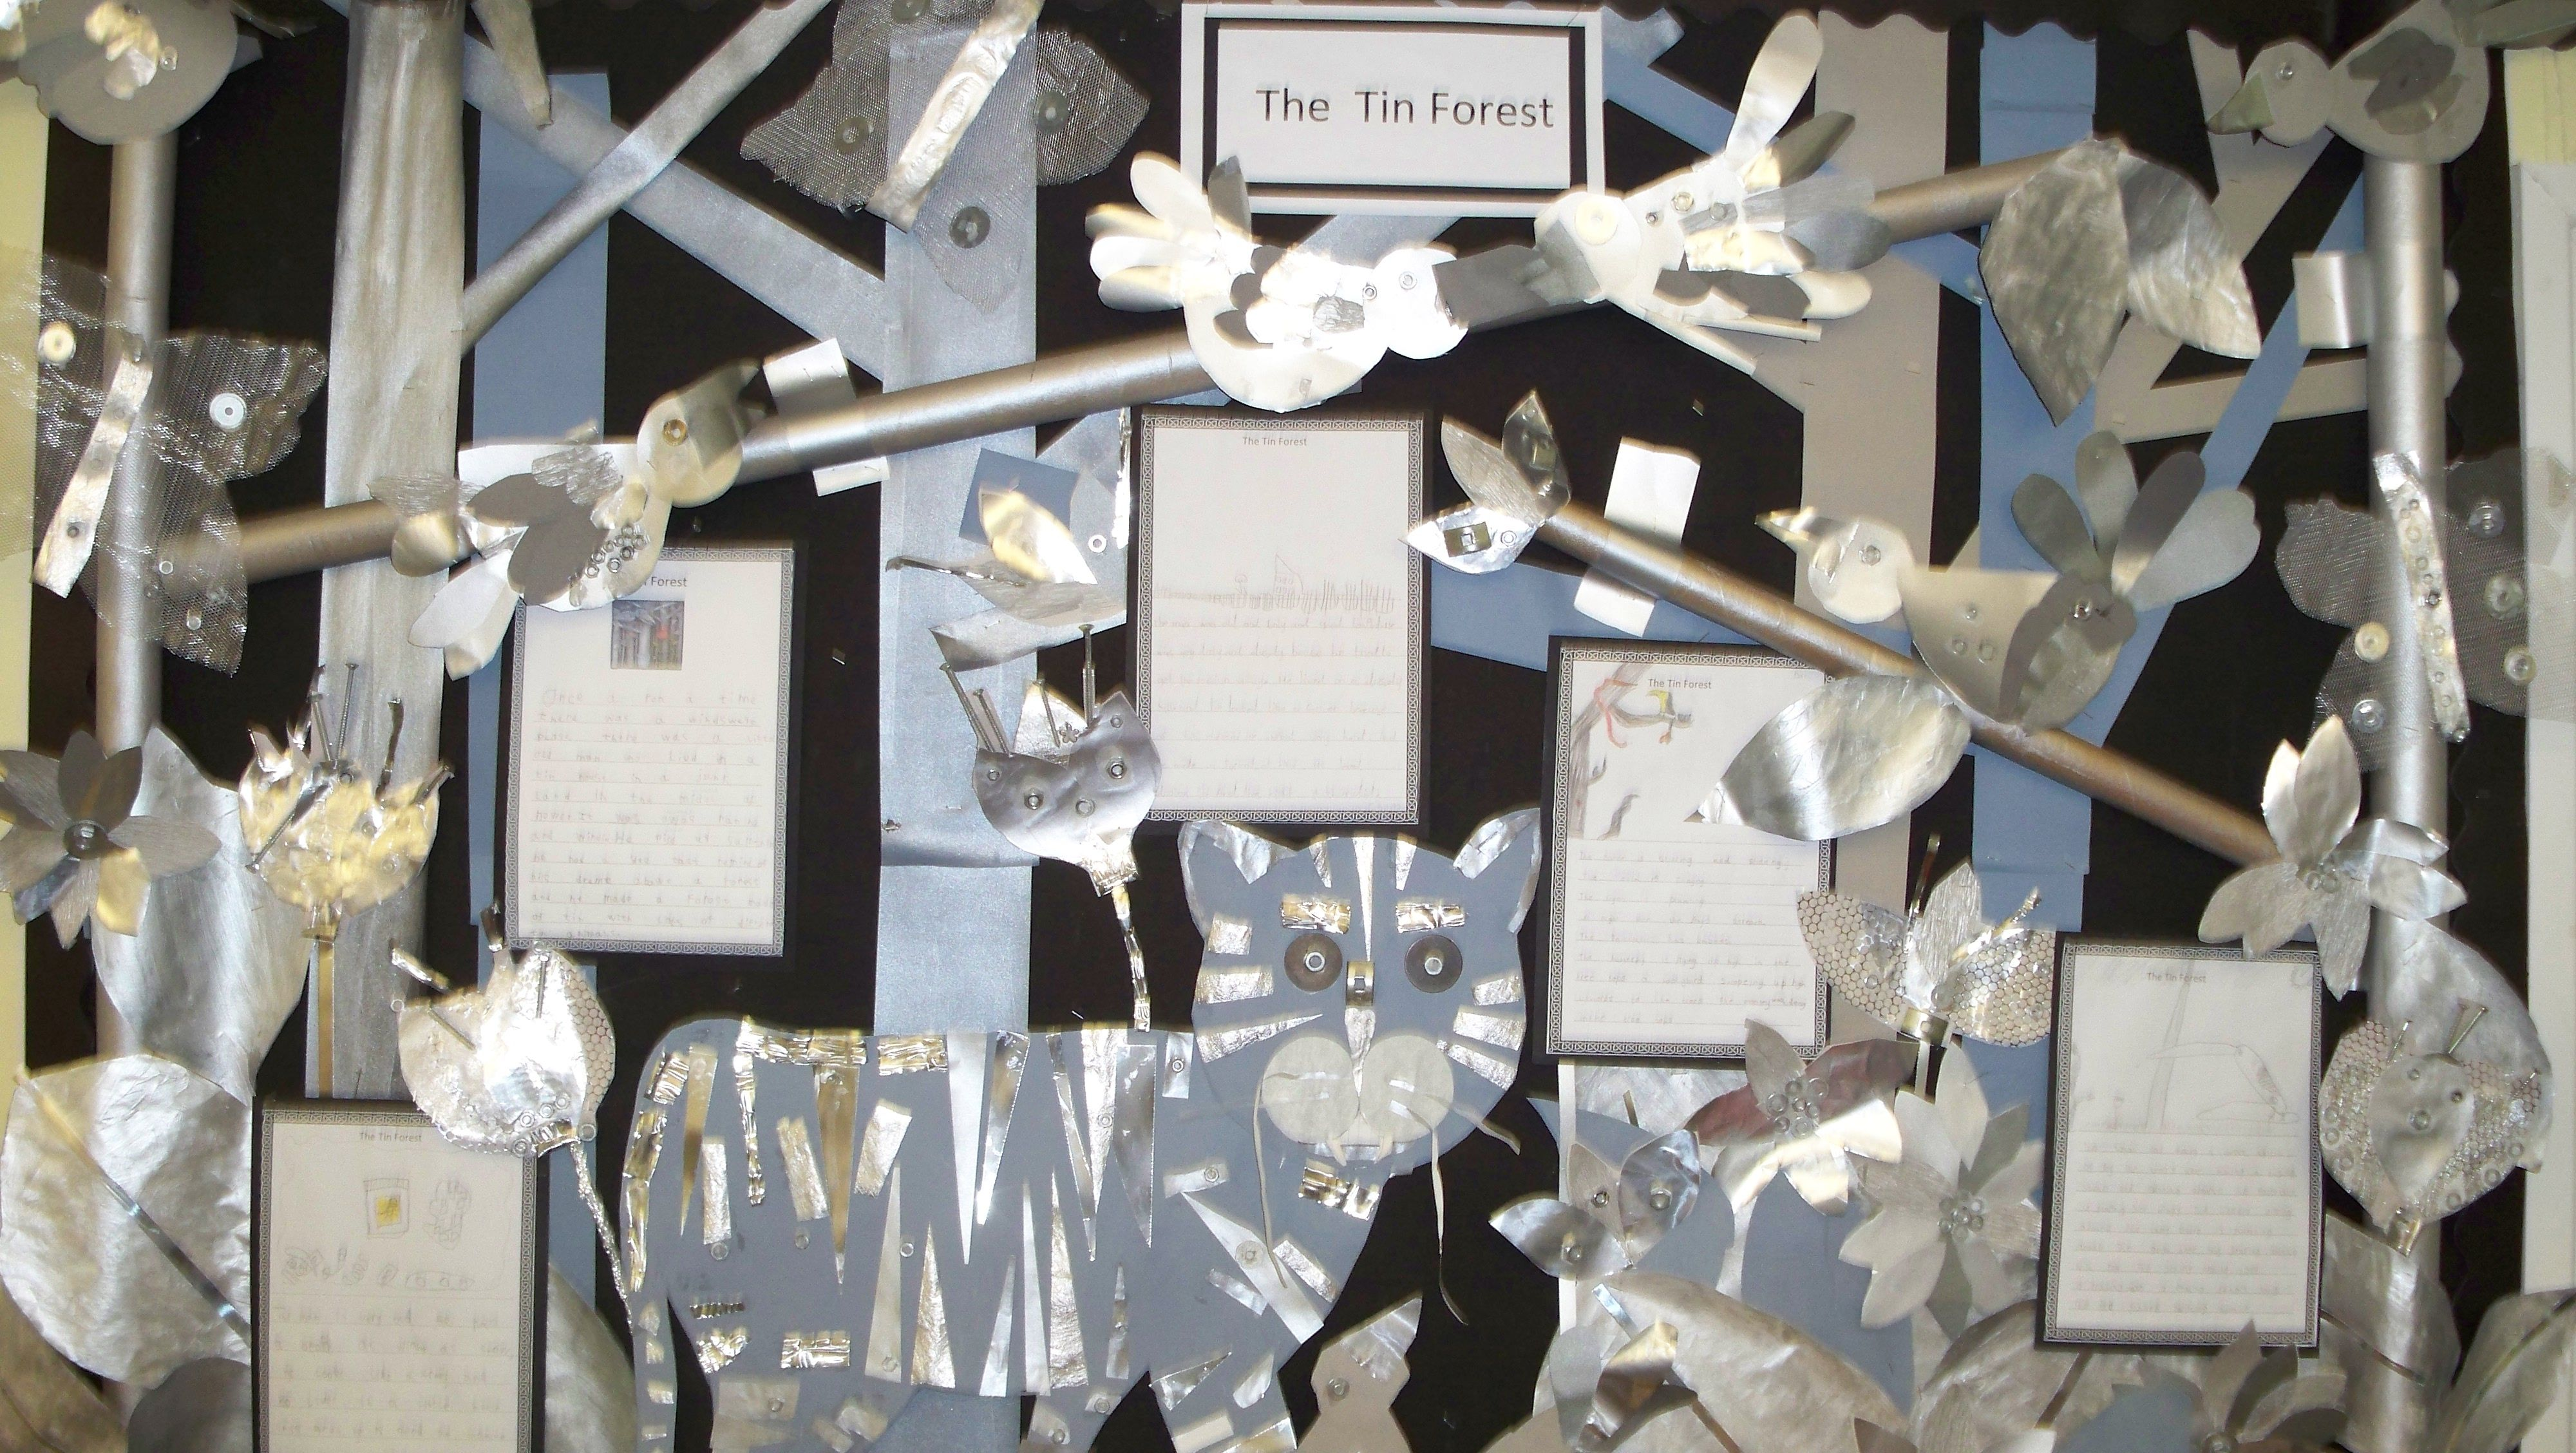 The Tin Forest Display